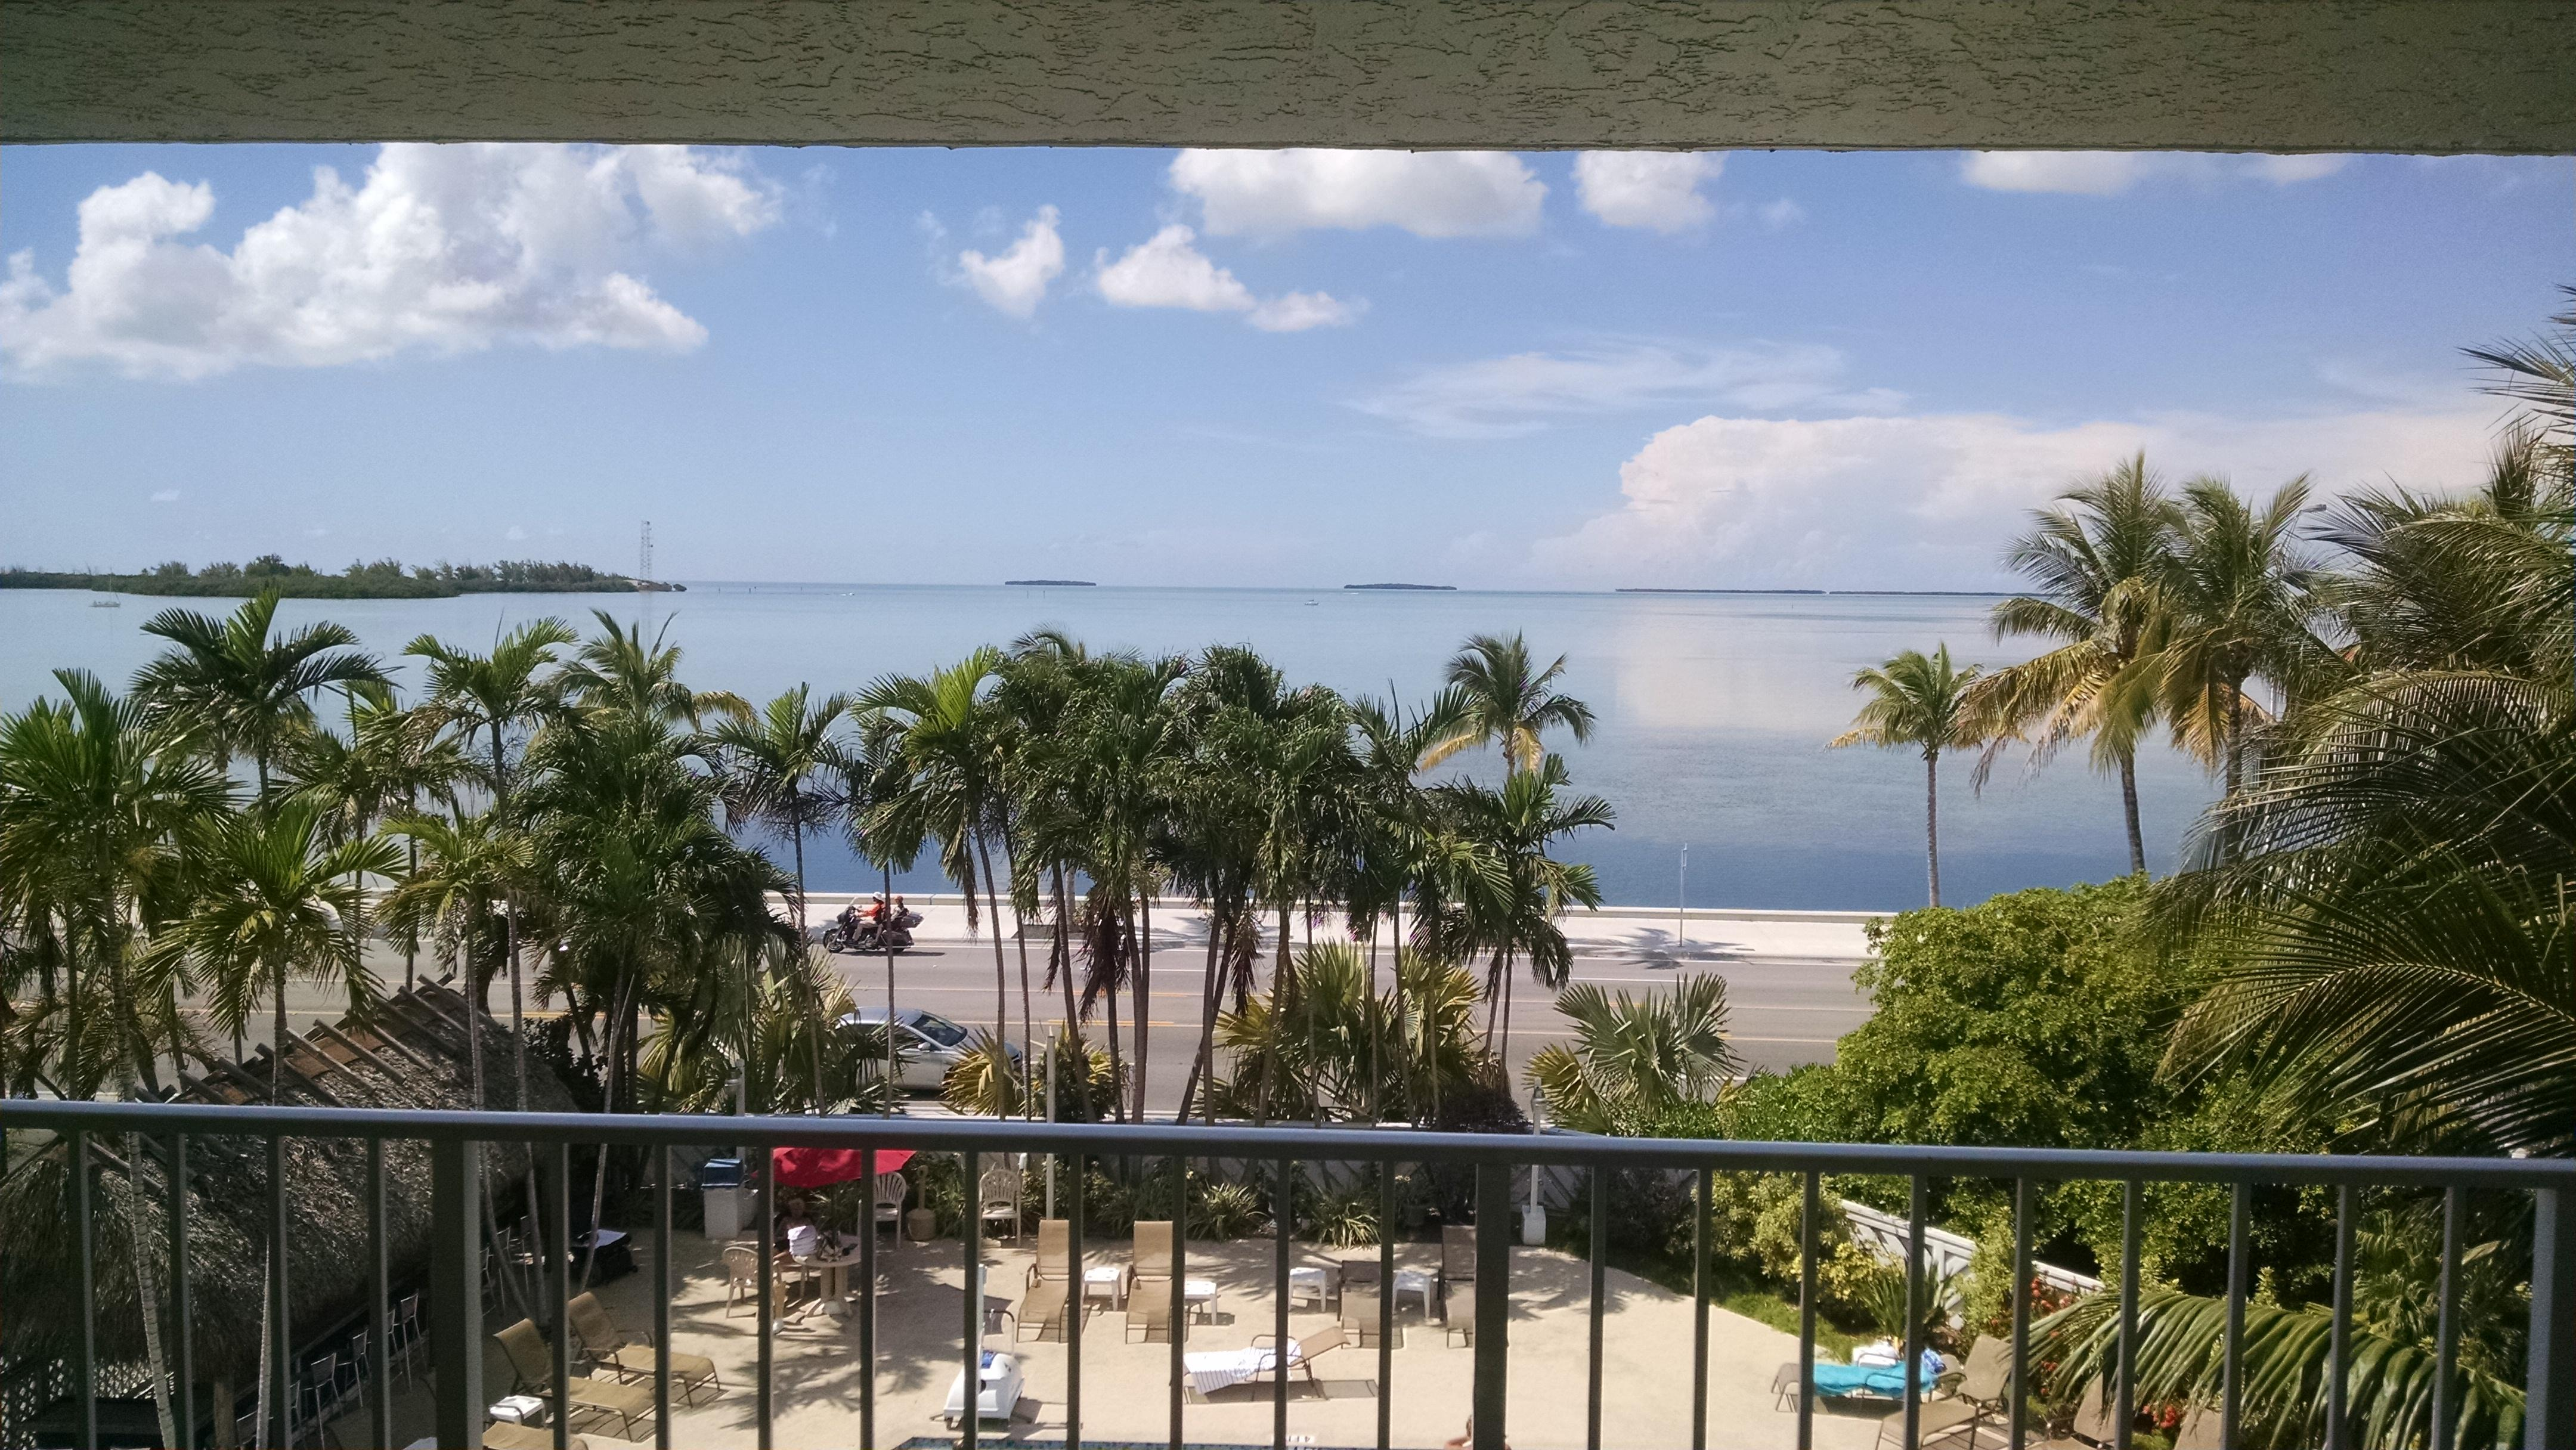 My view from the balcony